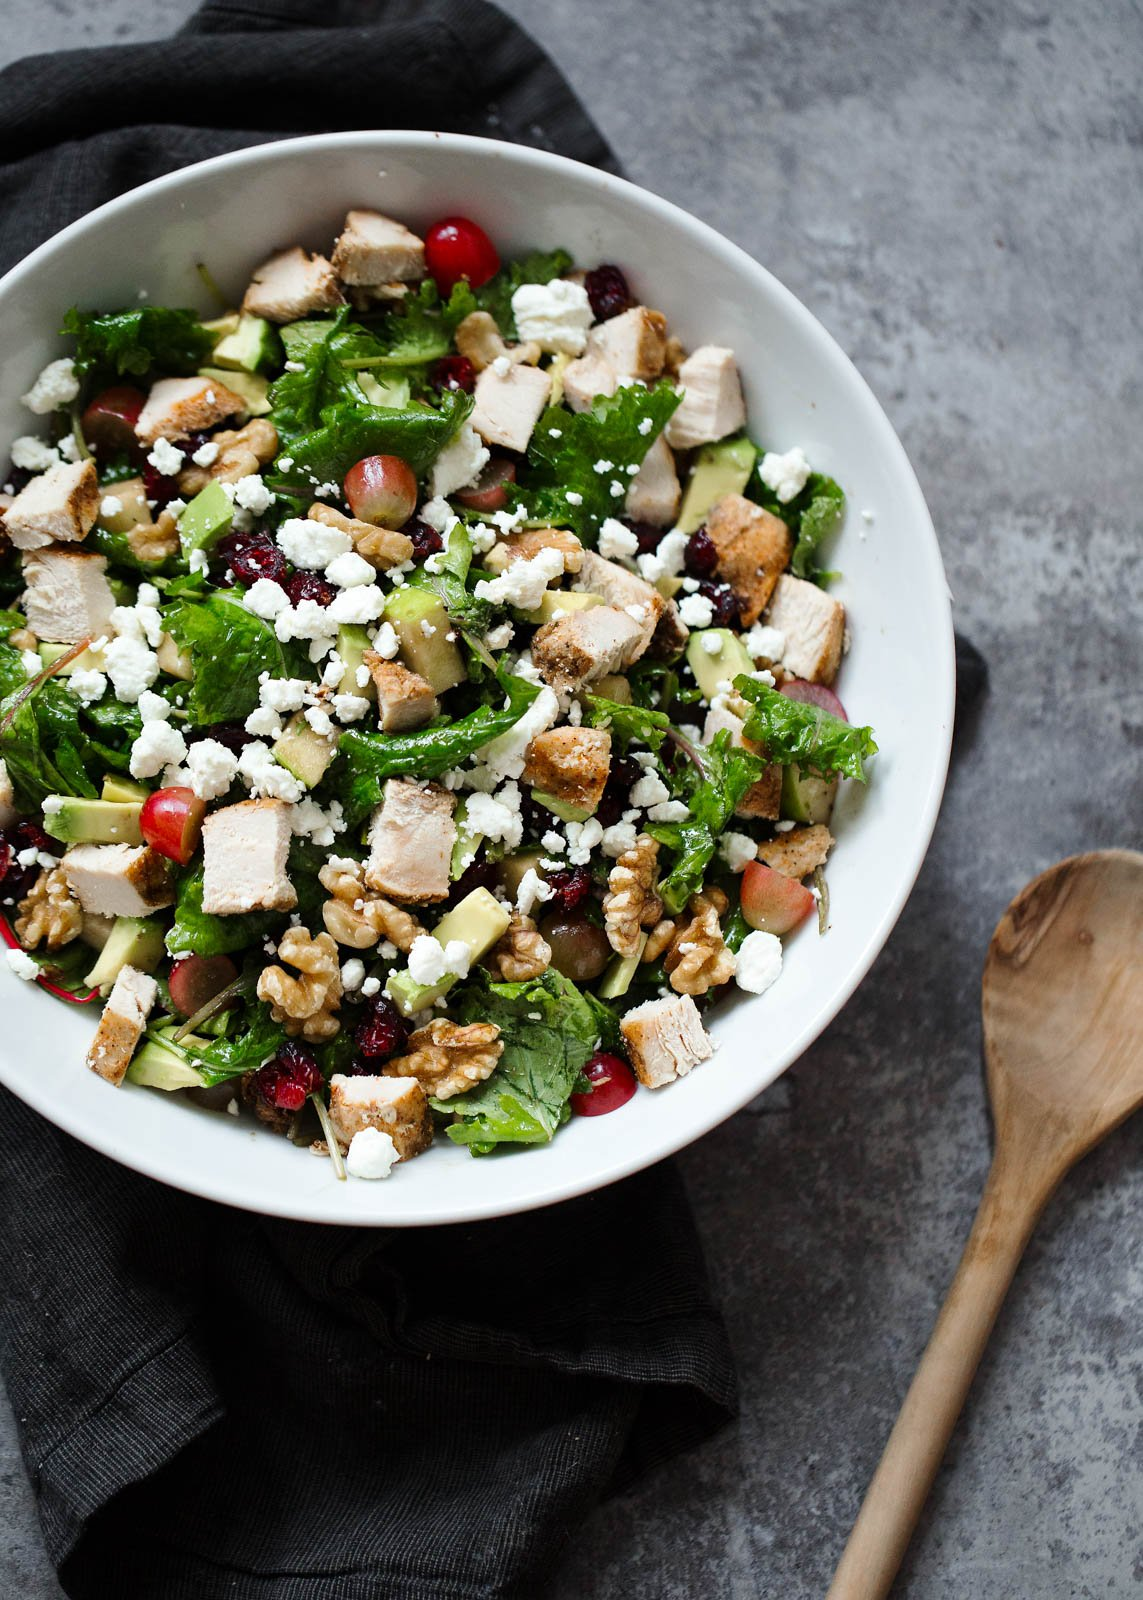 This fabulous kale waldorf salad has chopped chicken breast, avocado, goat cheese, tart cranberries and crunchy toasted walnuts. Tossed in an easy light balsamic vinaigrette.